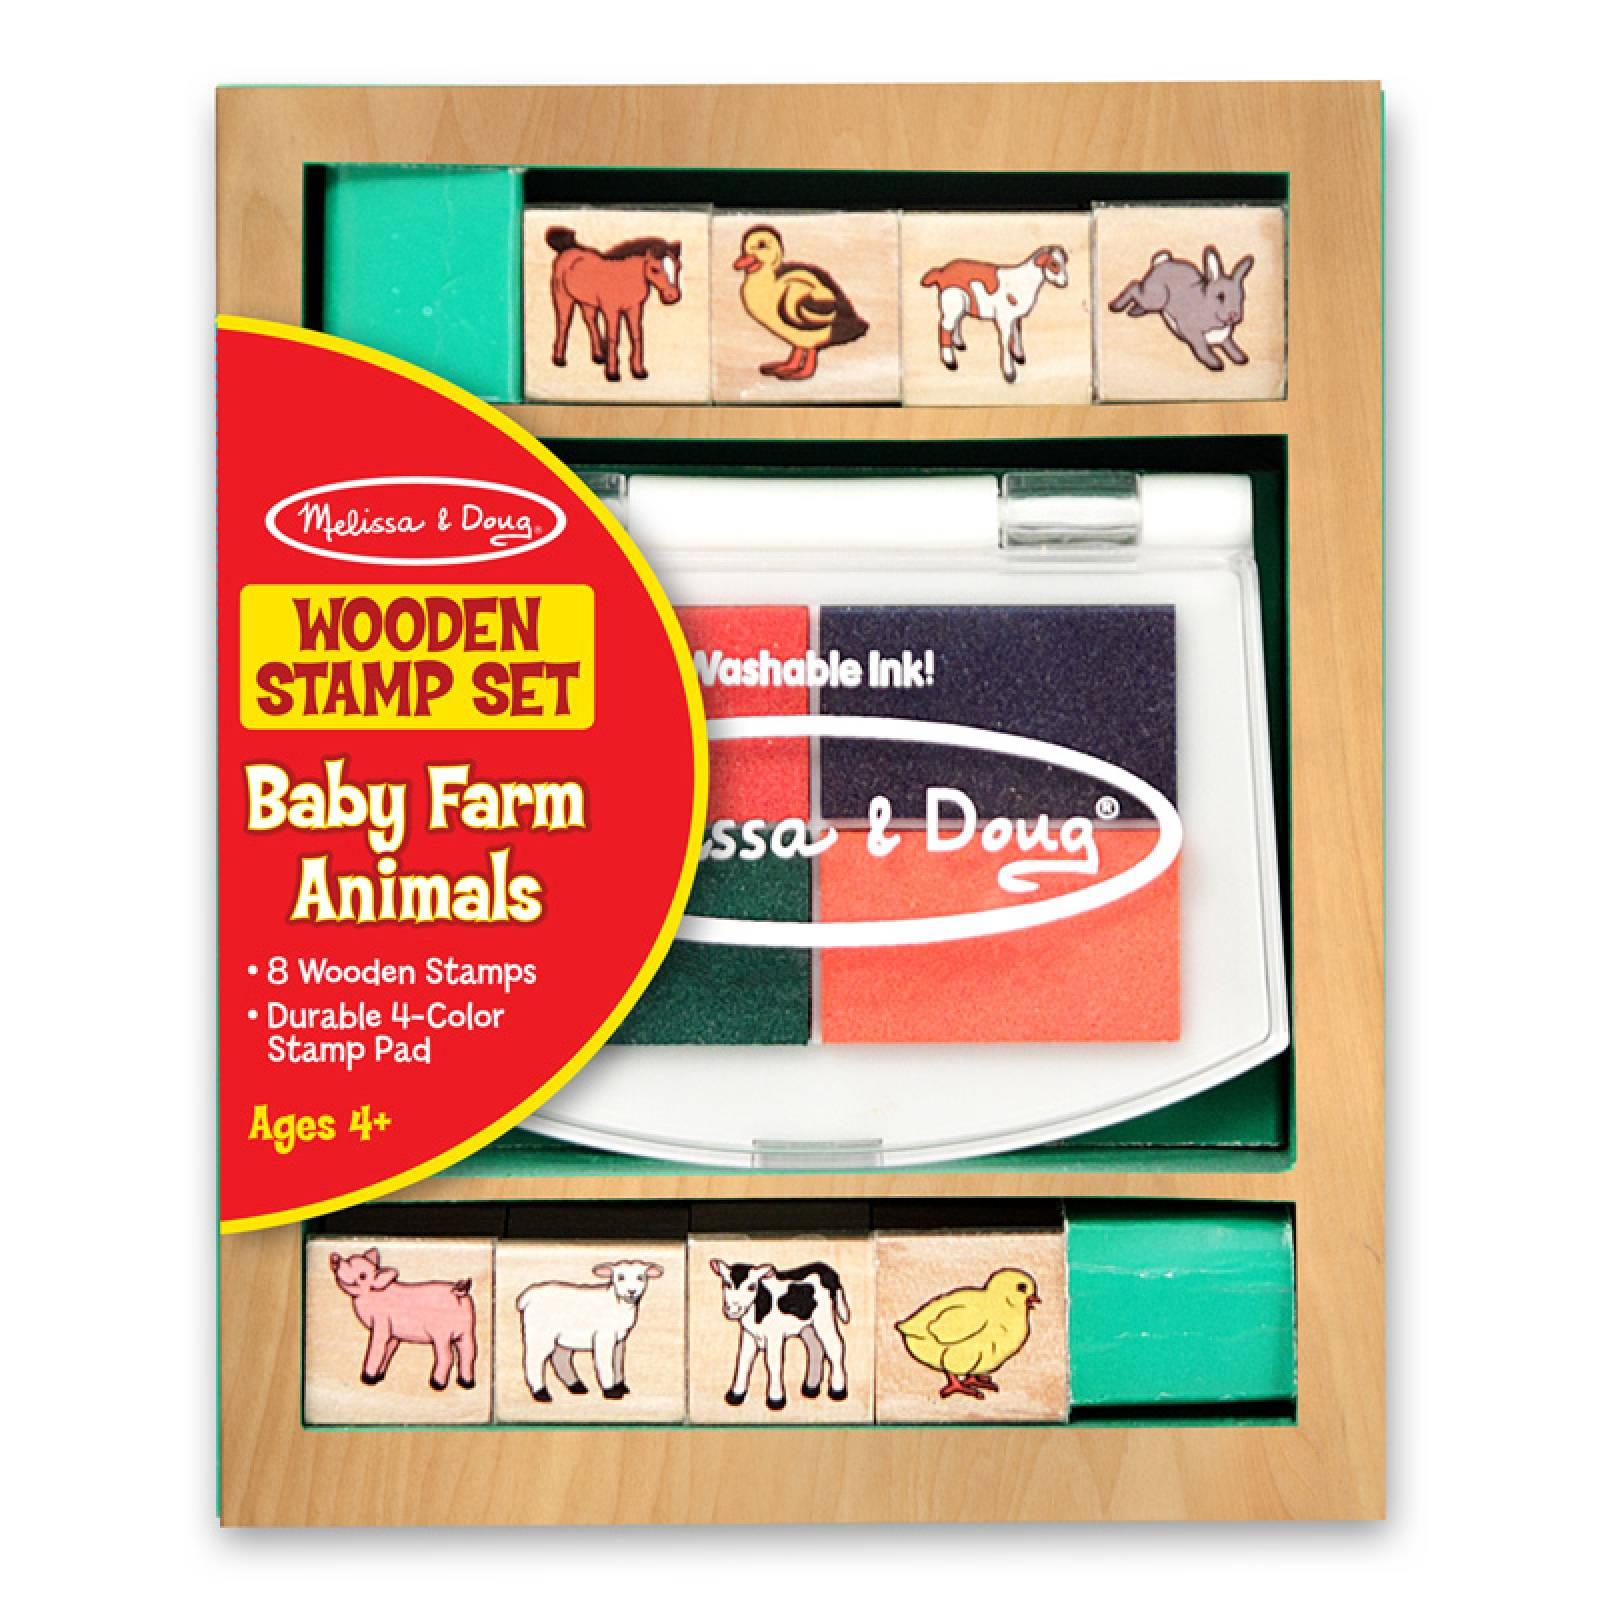 Baby Farm Animals - Small Stamp Set By Melissa & Doug